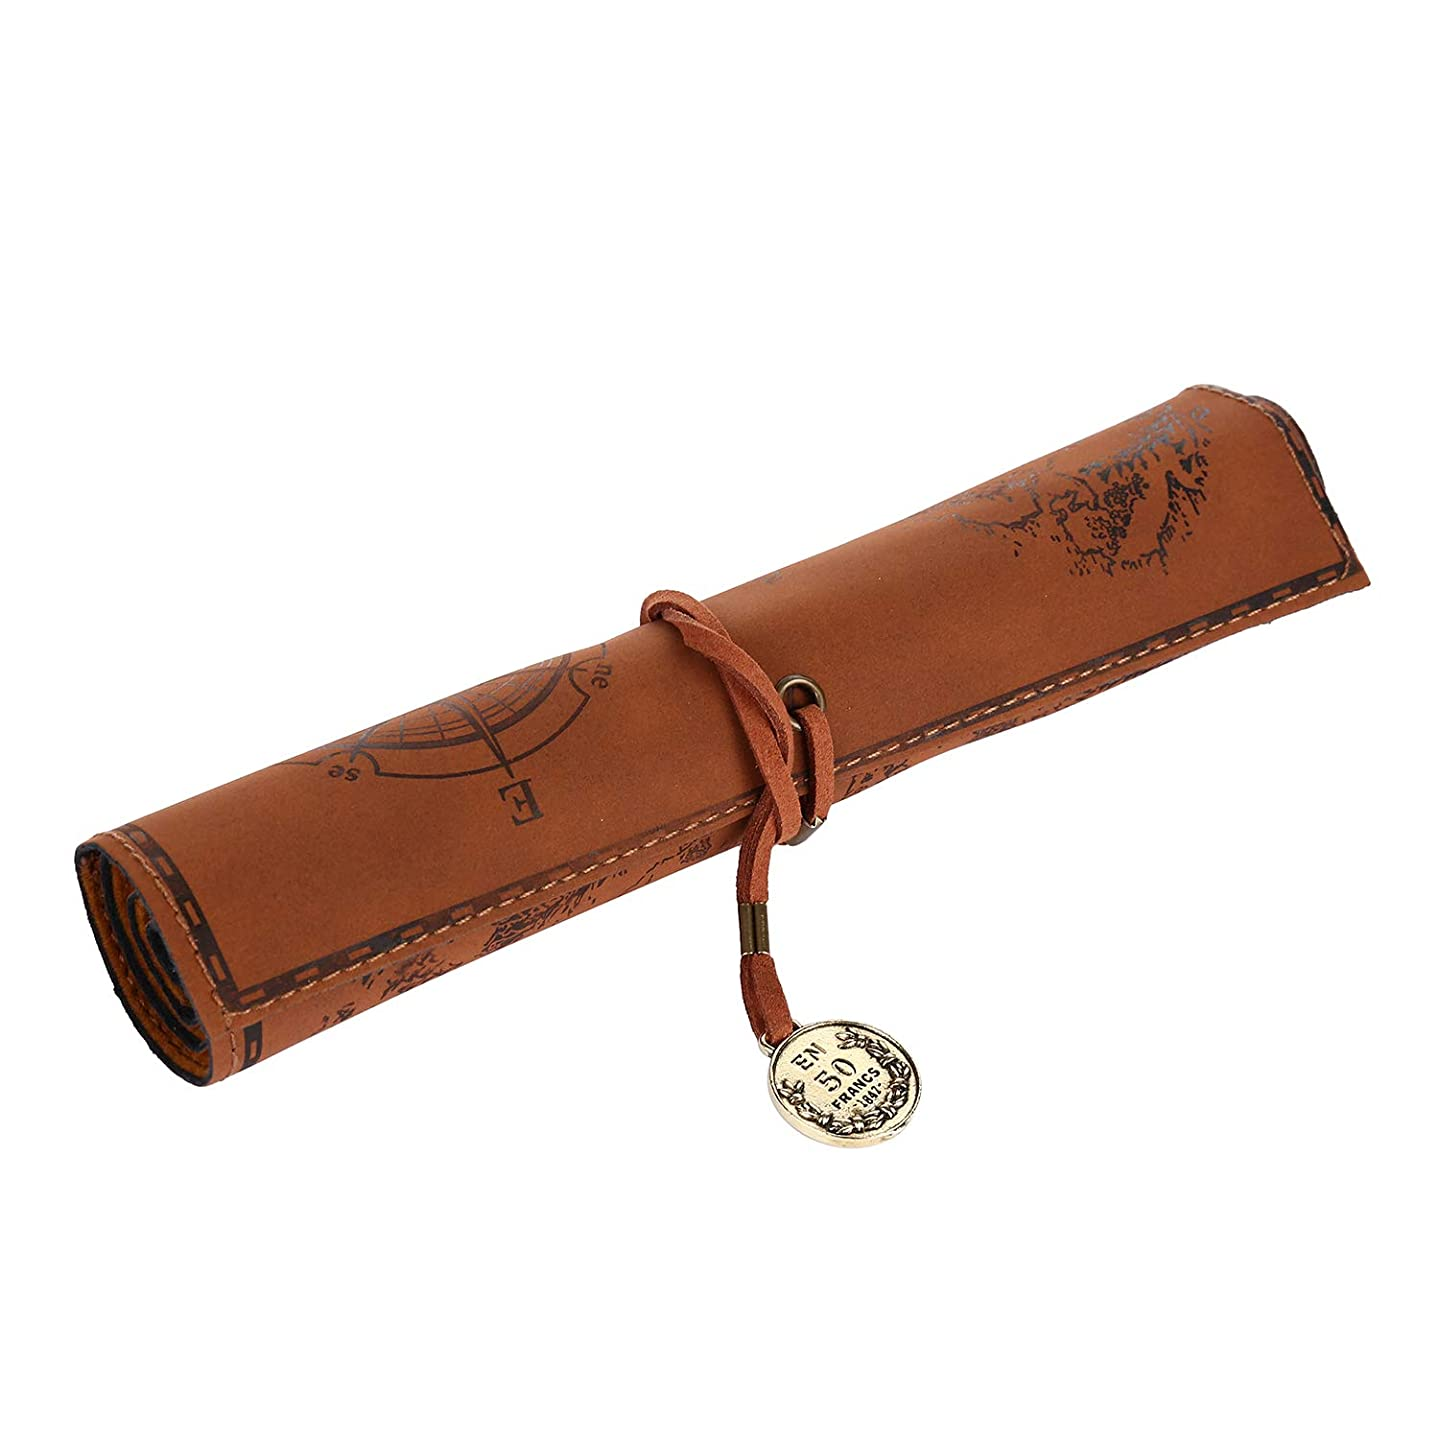 VABNEER PU Leather Pencil Roll Case Vintage Pencil case Pen Bag Pencil Holder (Brown)